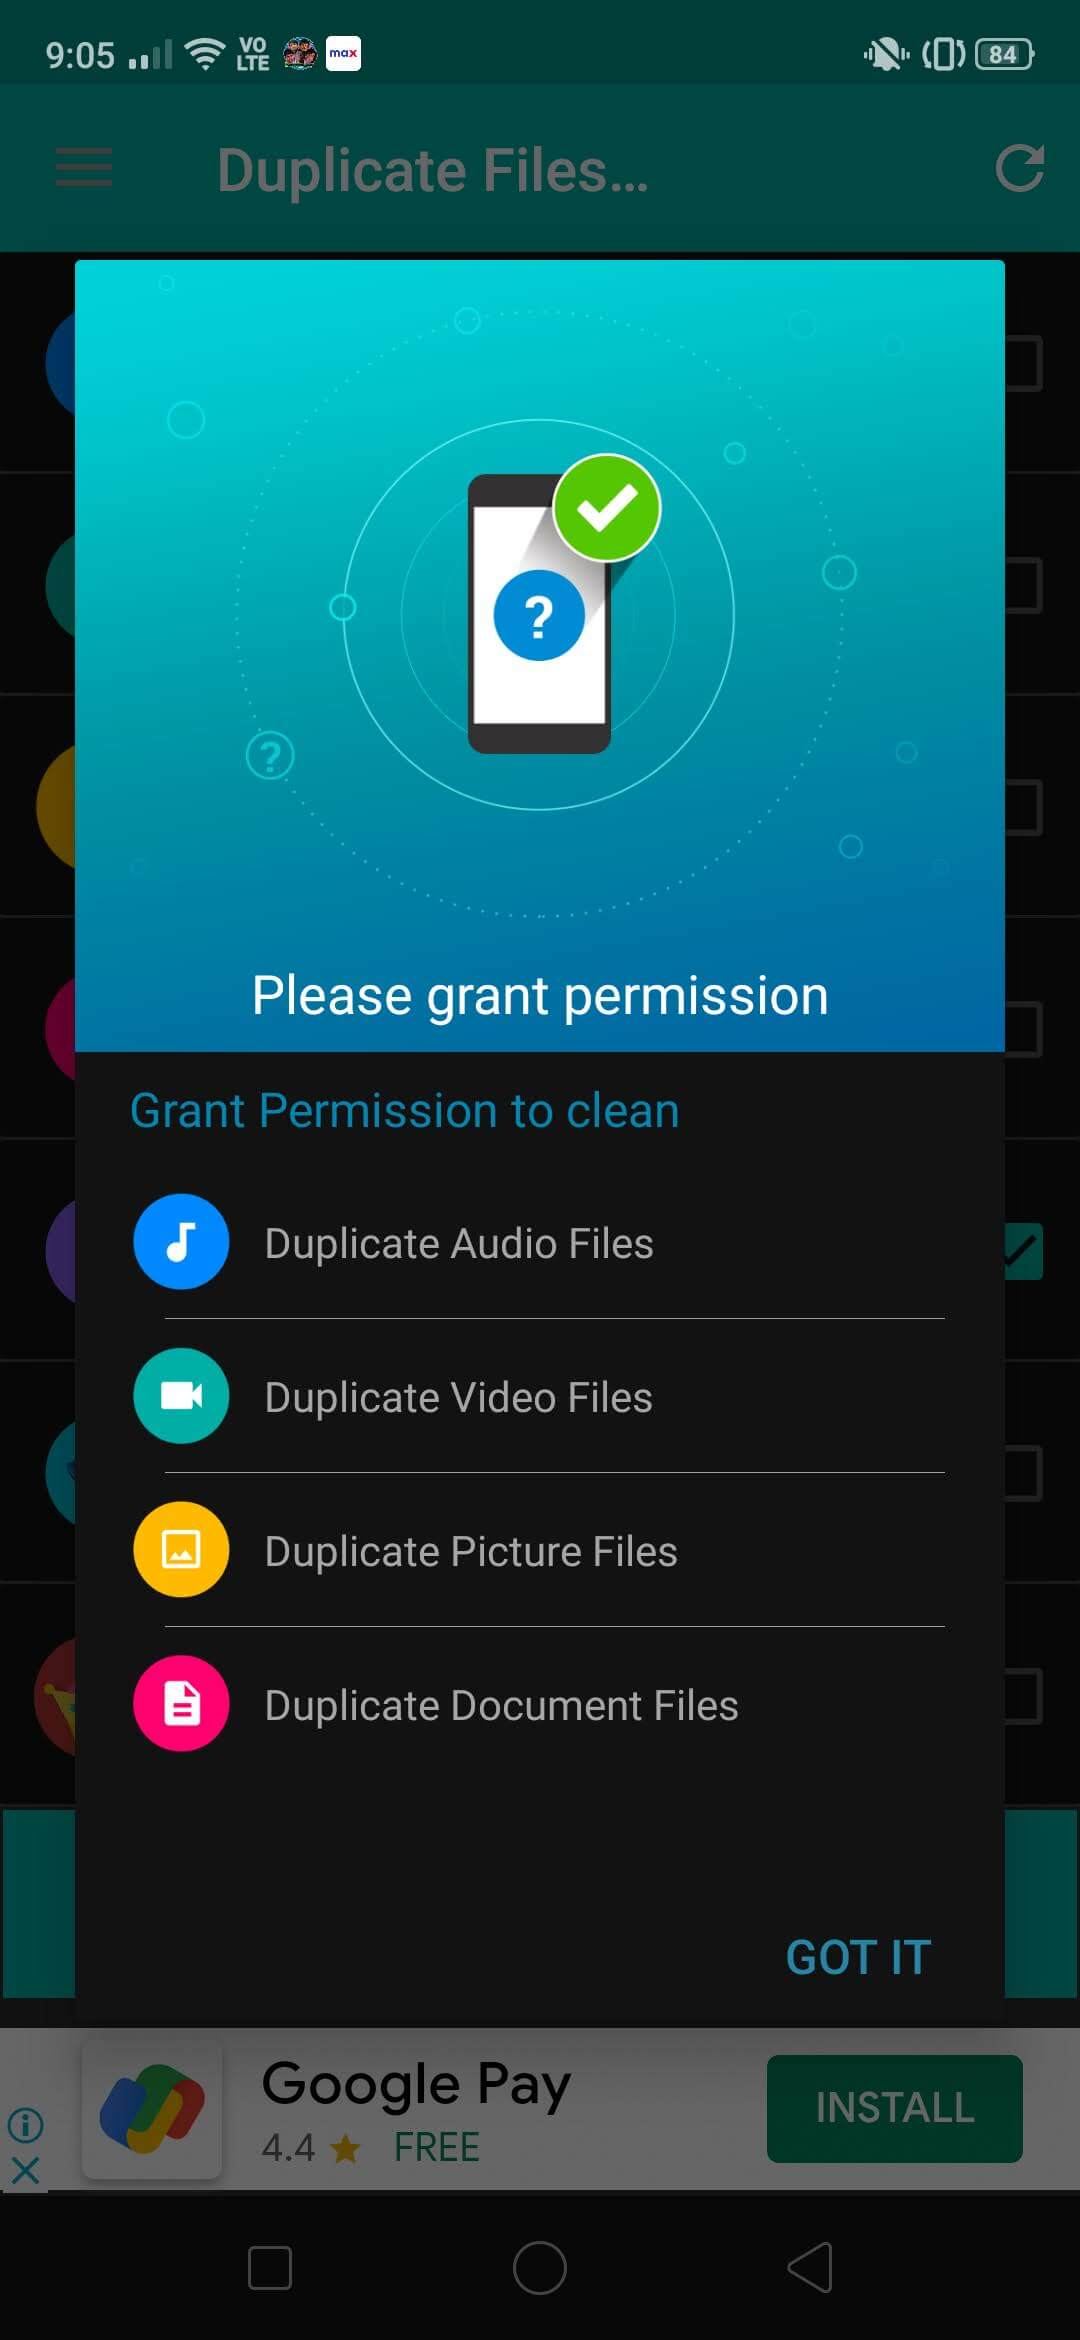 This application will check for duplicates of photos, videos, audios, and all documents in general.